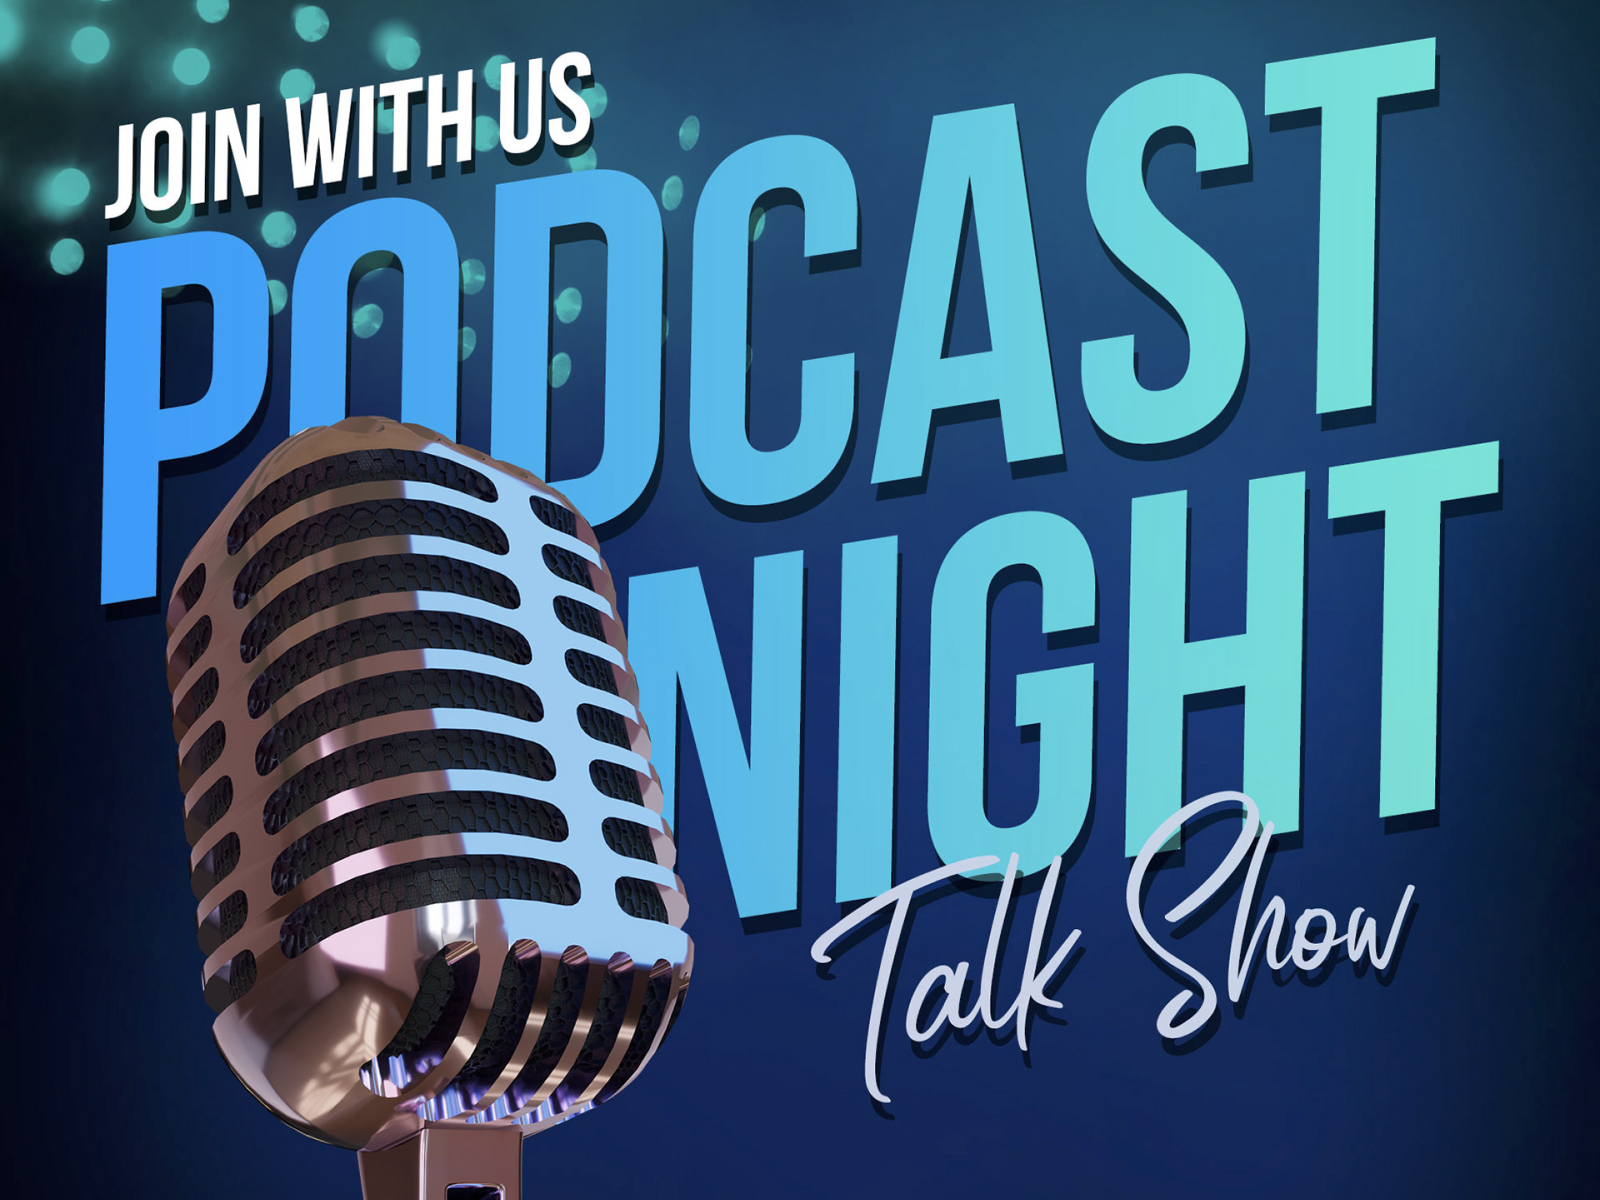 Podcast Night Talkshow Template cover image